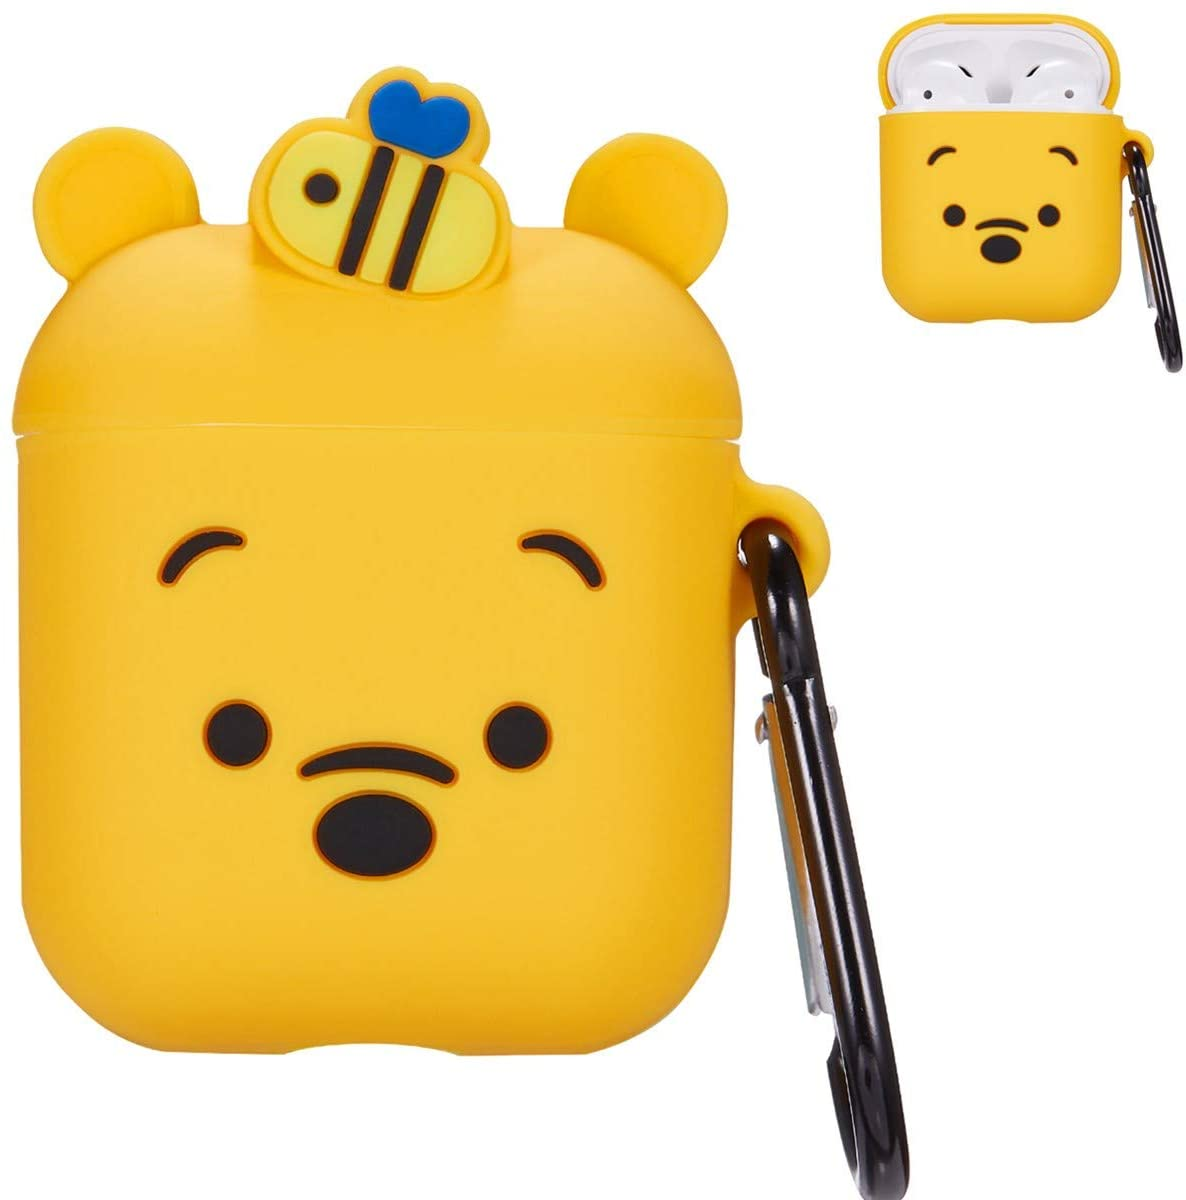 Mulafnxal Compatible with Airpods 1&2 Case,Cute 3D Funny Cartoon Character Silicone Airpod Cover,Kawaii Fun Cool Catalyst Design Skin Kits,Fashion Cases for Girls Kids Teens Boys Air pods(Honey Winnie